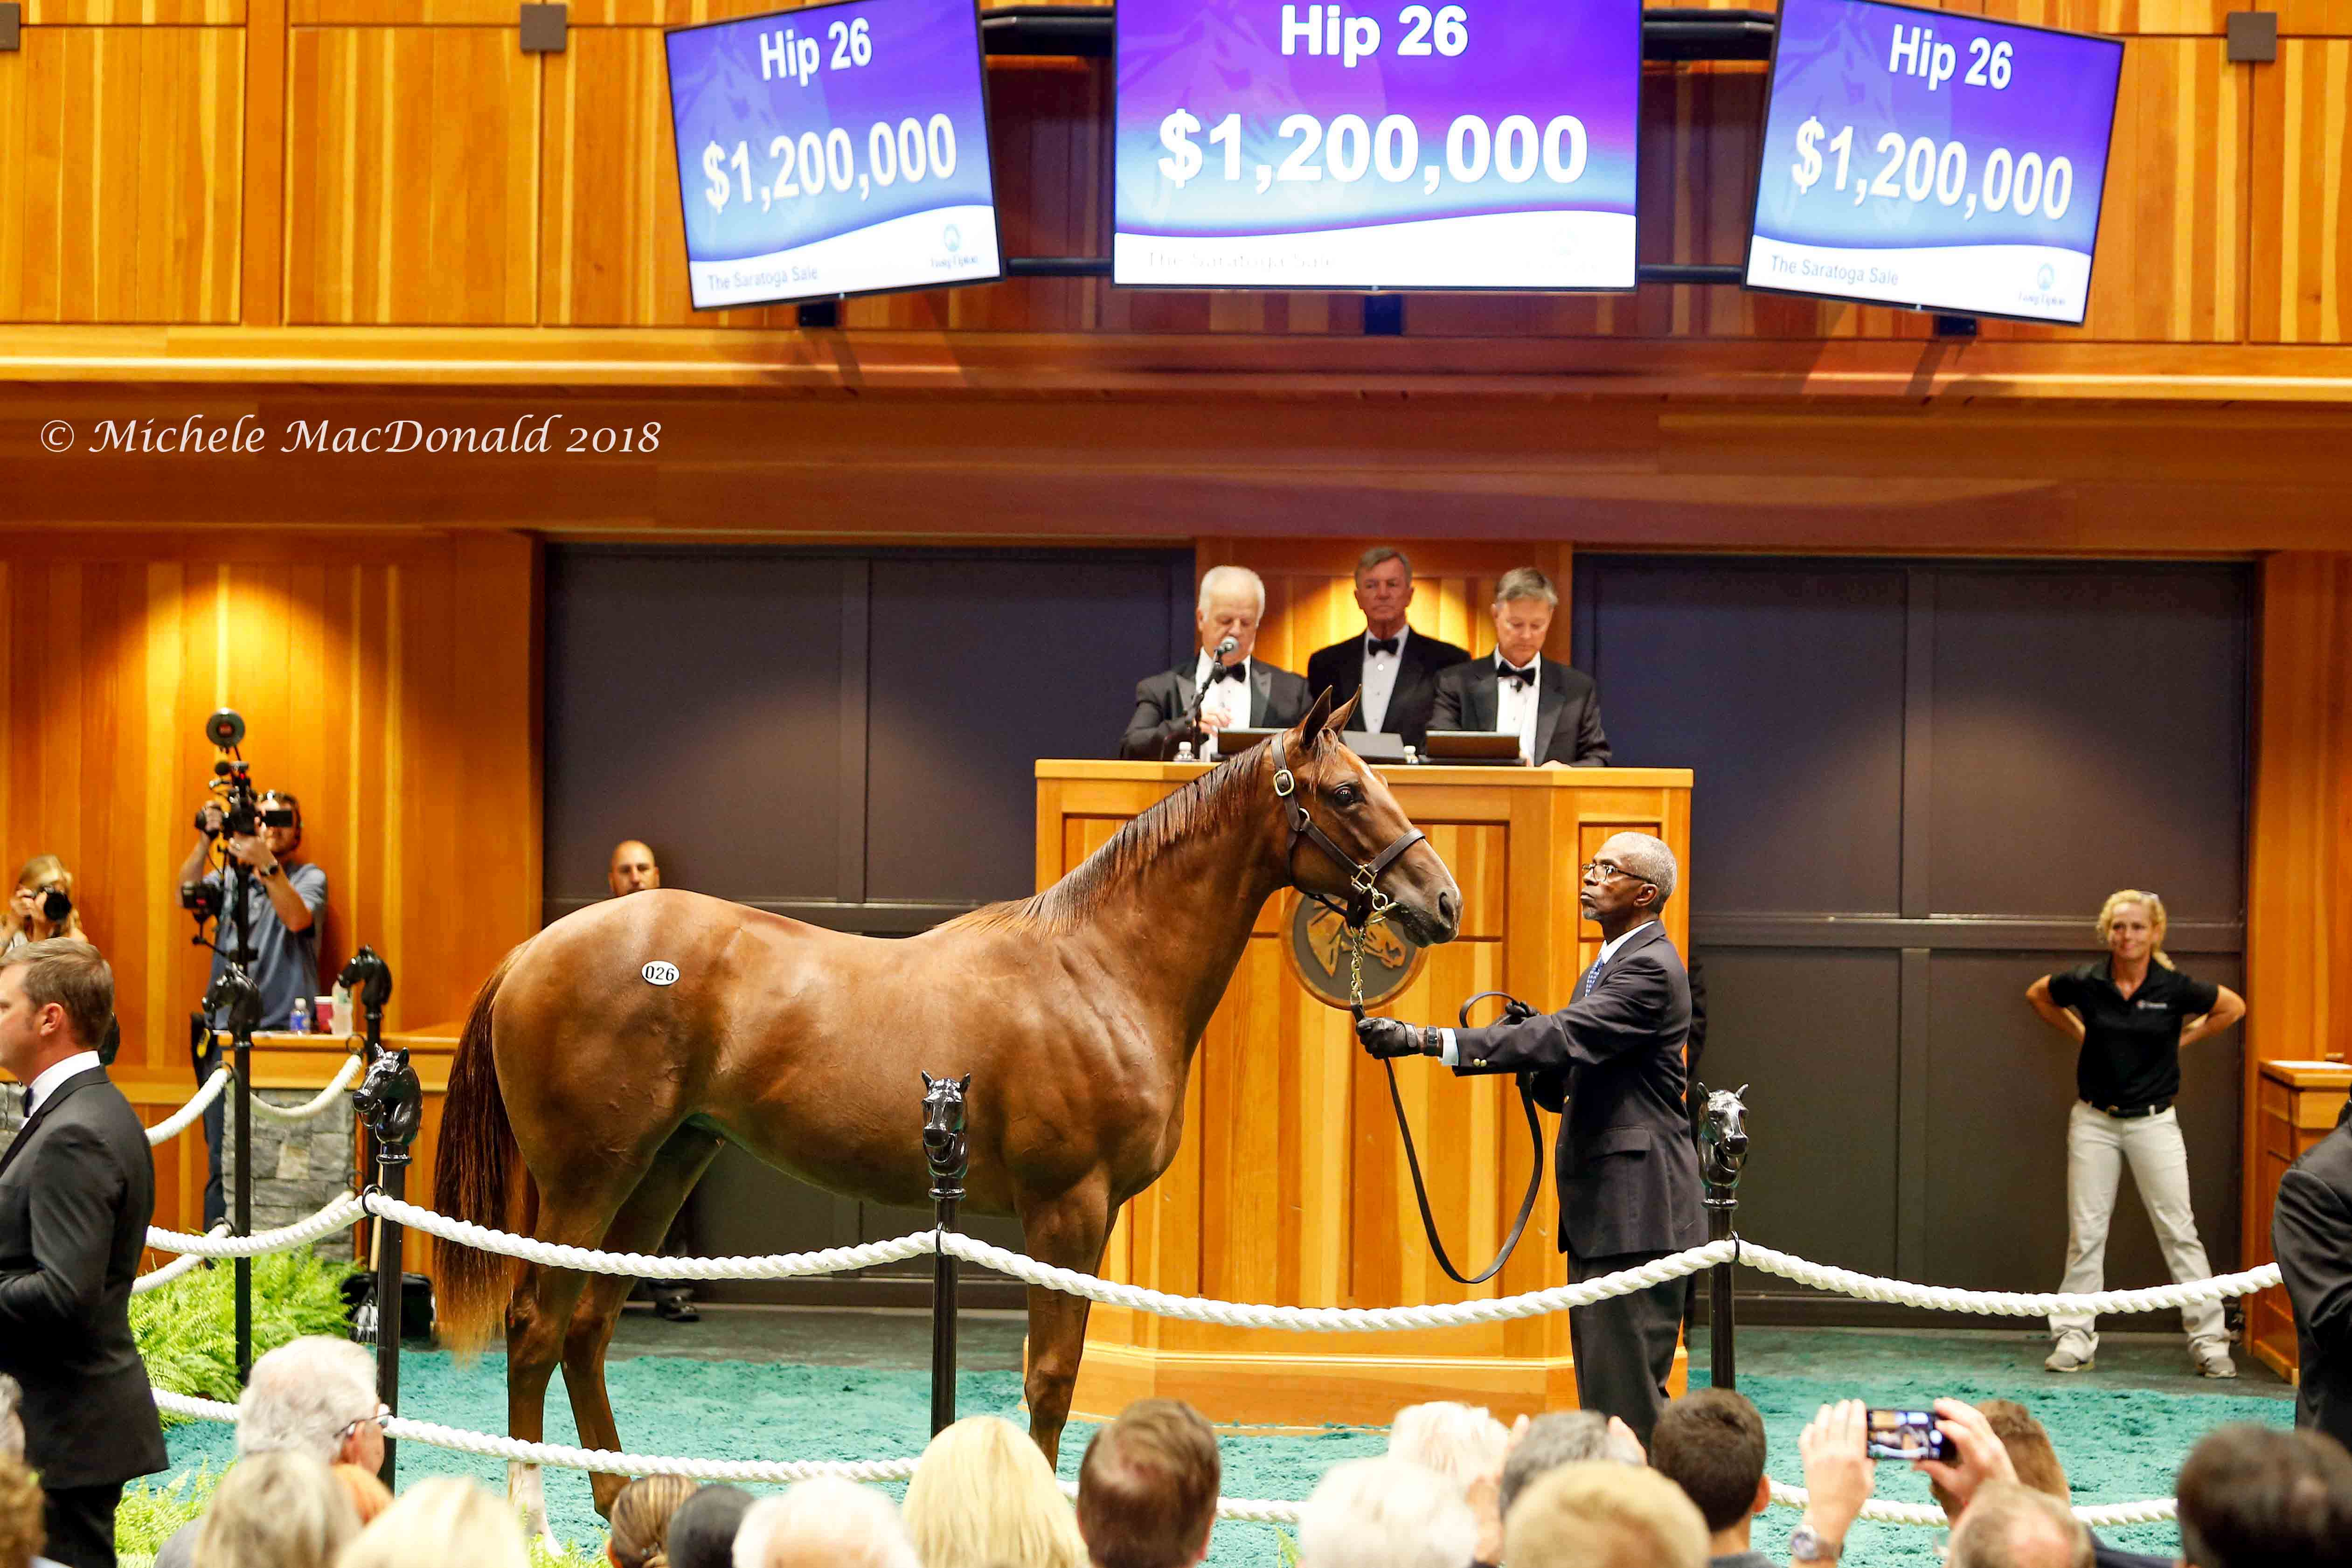 This American Pharoah filly out of Life At Ten was bought by Gainesway's Brian Graves as a weanling last November. She is pictured being resold for $1.2 million at the Fasig-Tipton Saratoga sale in August. Photo: Michele MacDonald